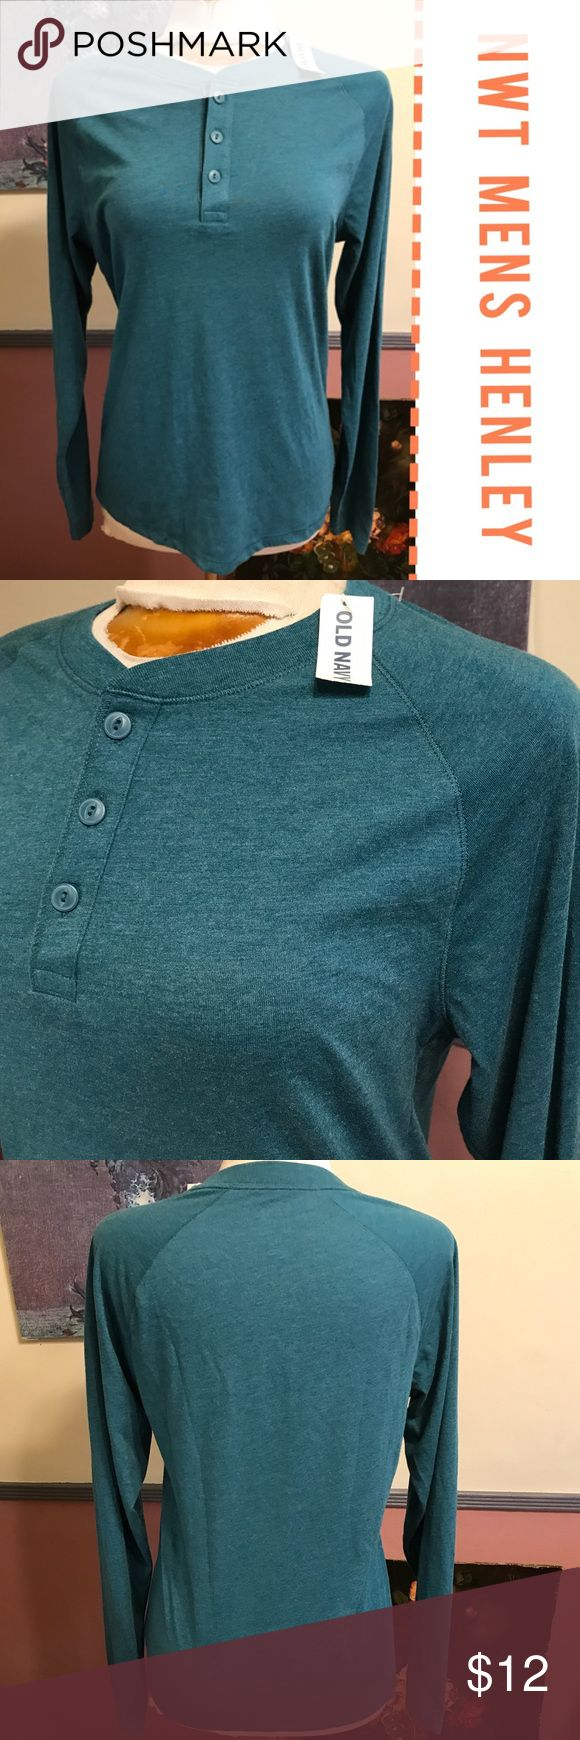 🥒SALE🥒 Men's Teal Long Sleeve Henley Great base layer for your guy in a very pretty blue-green / Teal color. Brand new because the sleeves were too long on my partner and I forgot to return it! Size small Old Navy Shirts Tees - Long Sleeve